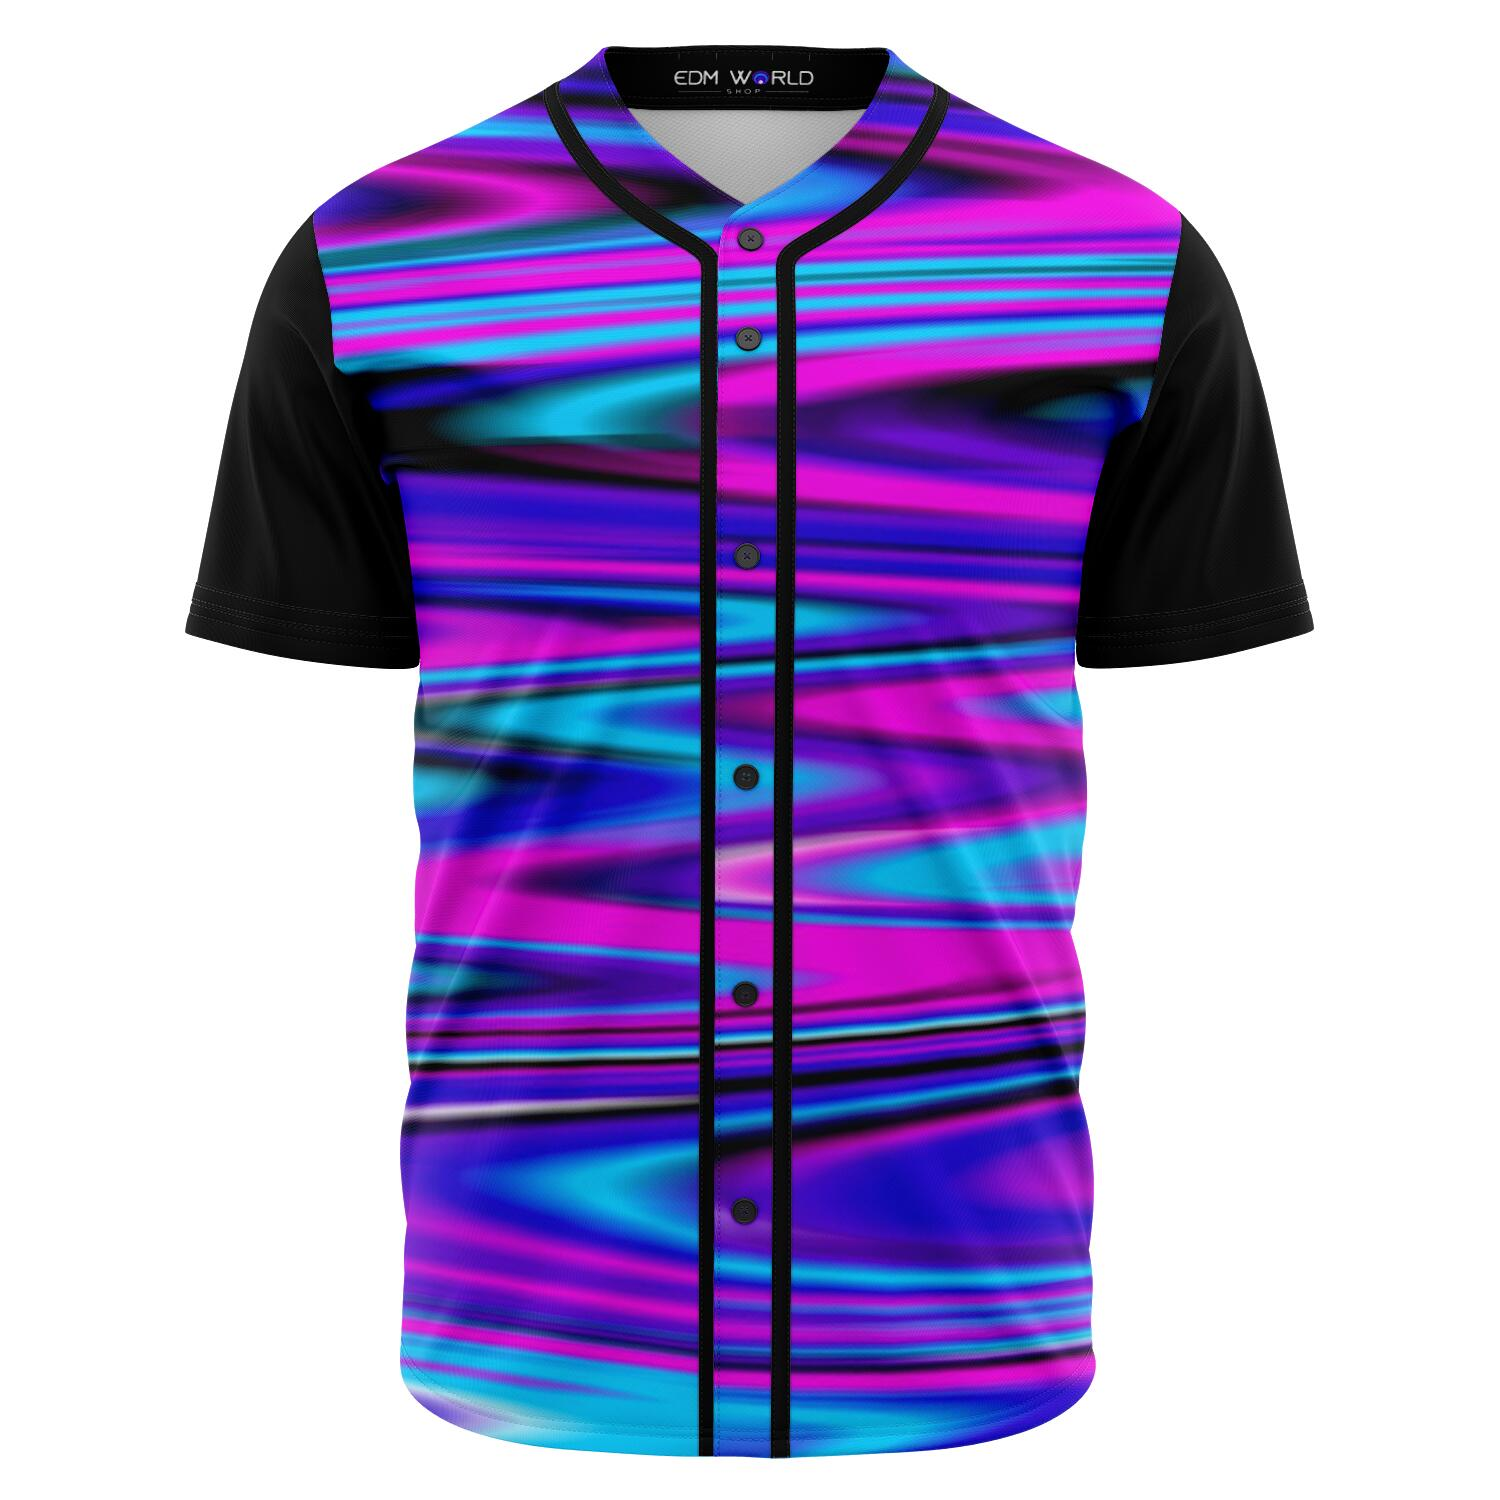 Blurred Dream Front Baseball Jersey